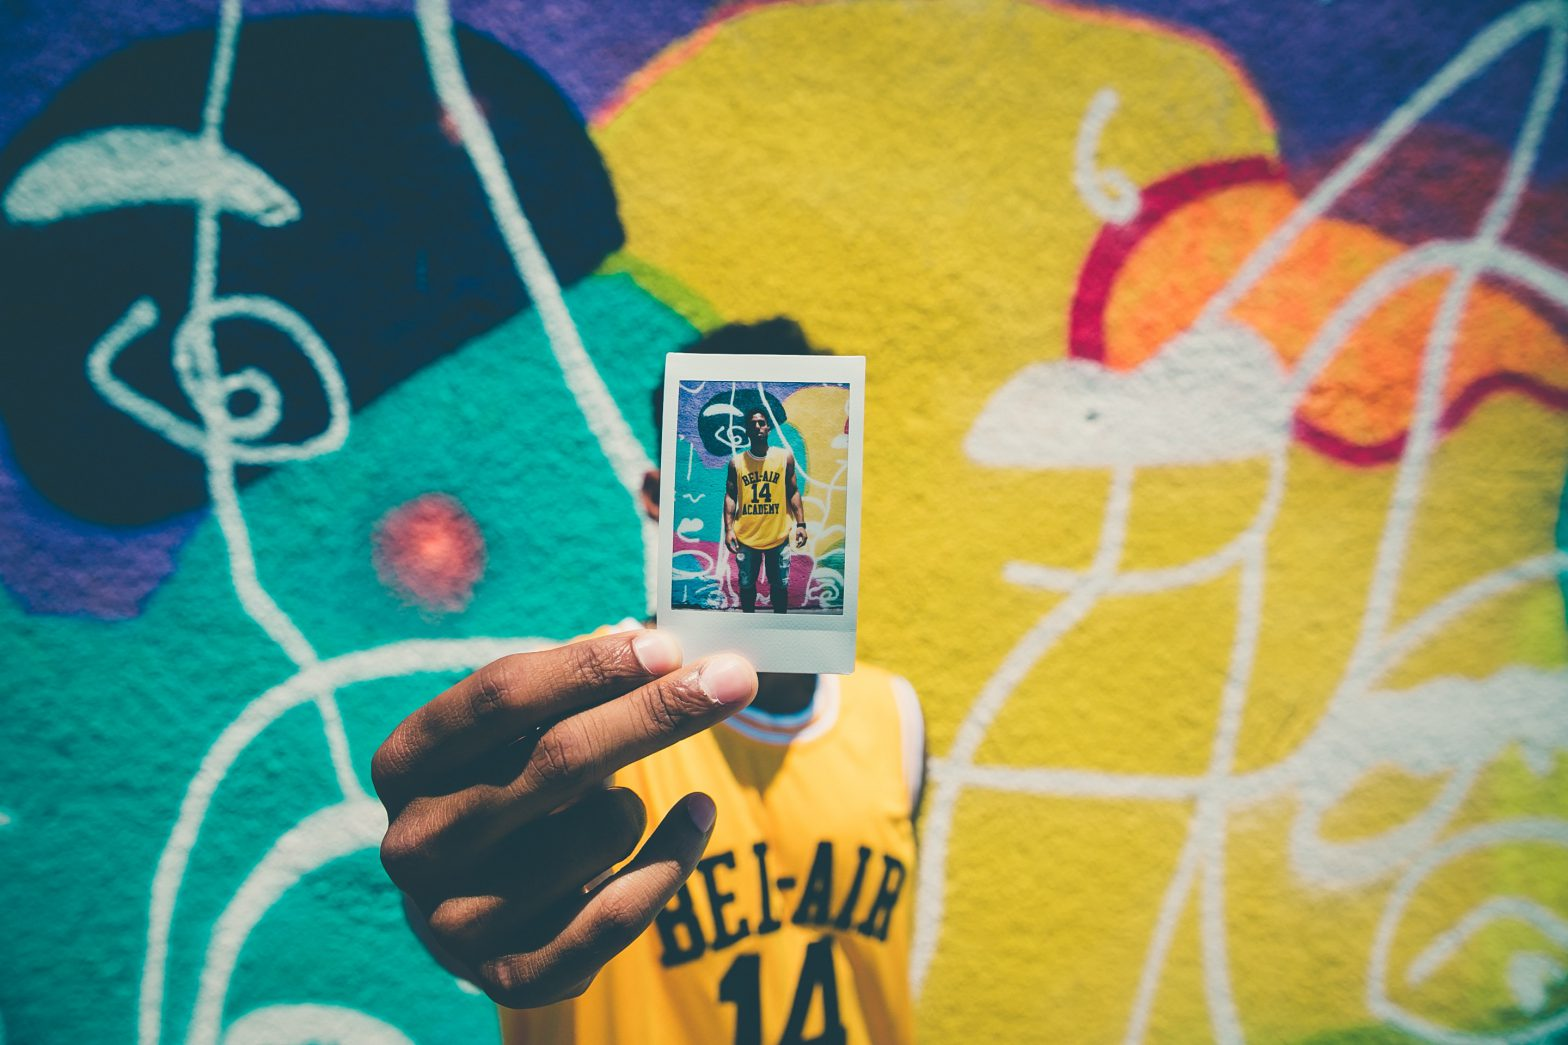 basketball player holding polaroid of self mural in background